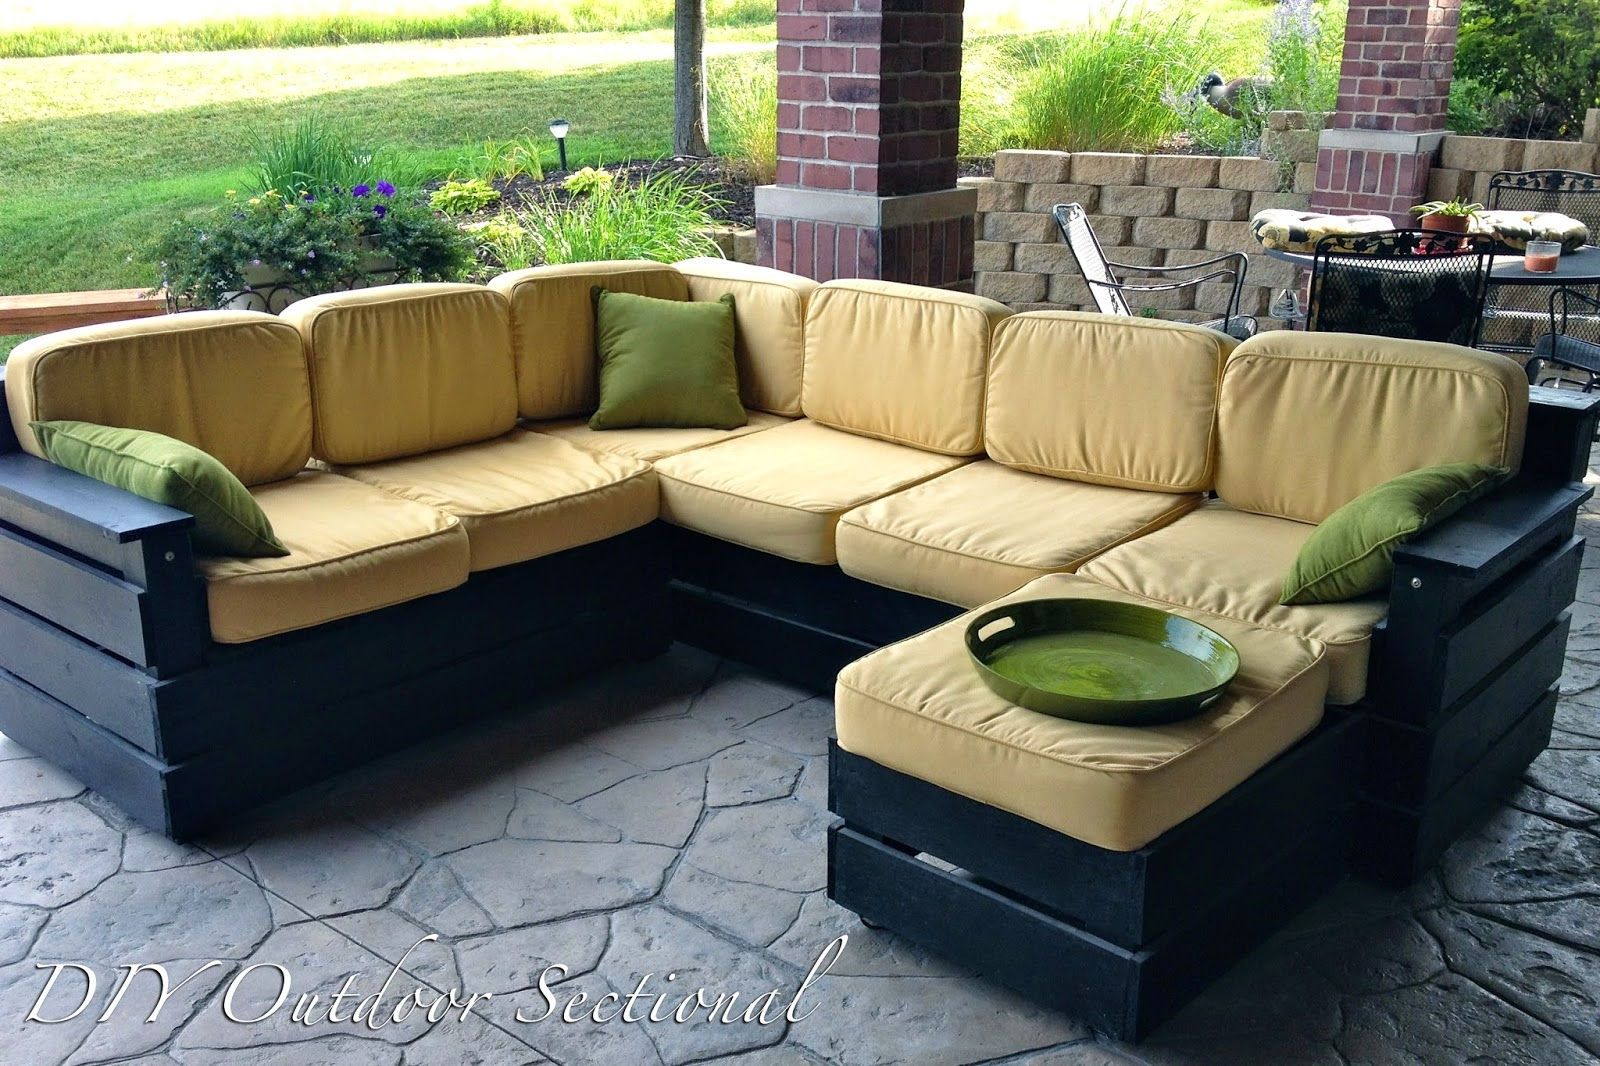 Diy Outdoor Sectional Build It Yourself Out Of Regular Wood From With Diy Sectional Sofa Plans (#7 of 12)